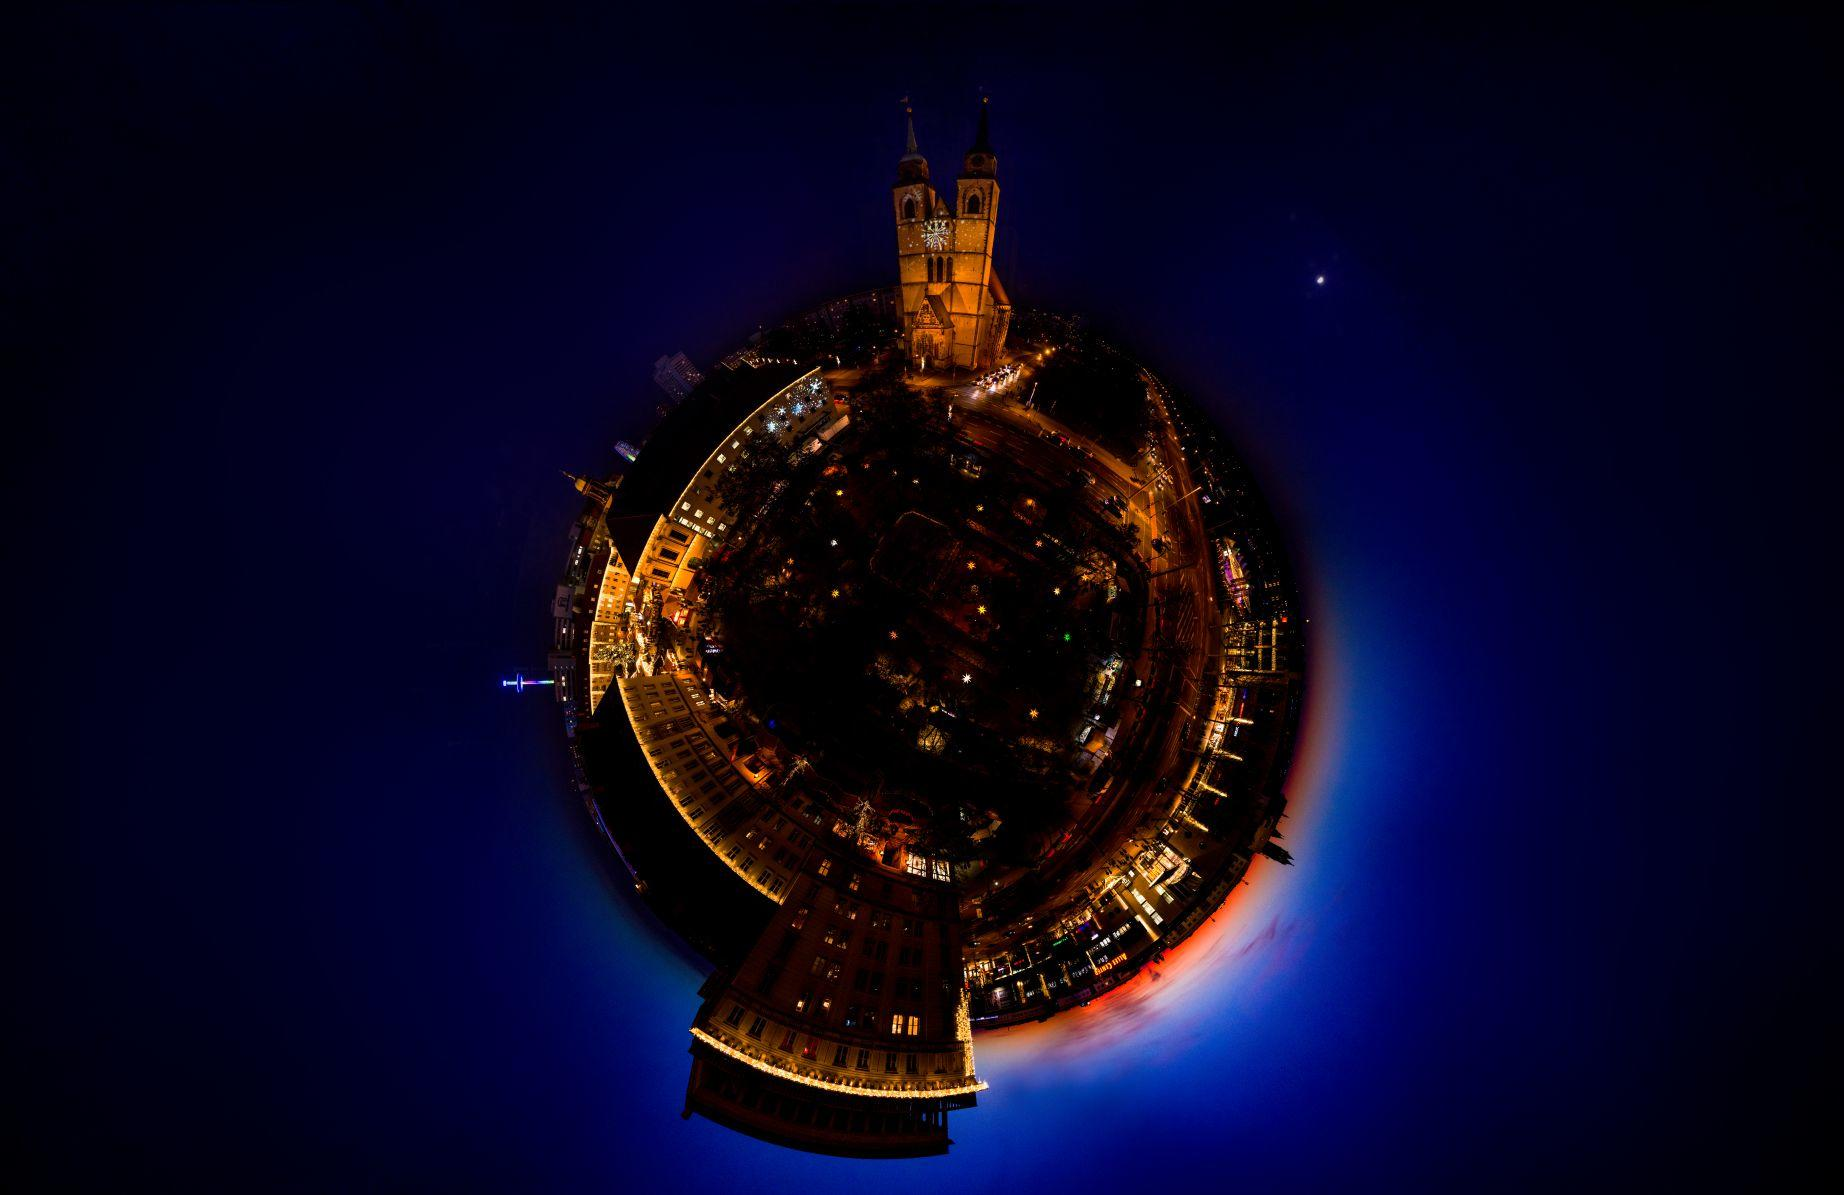 Traditioneller Weihnachtsmarkt - am Ratswaageplatz in Magdeburg - Little Planet